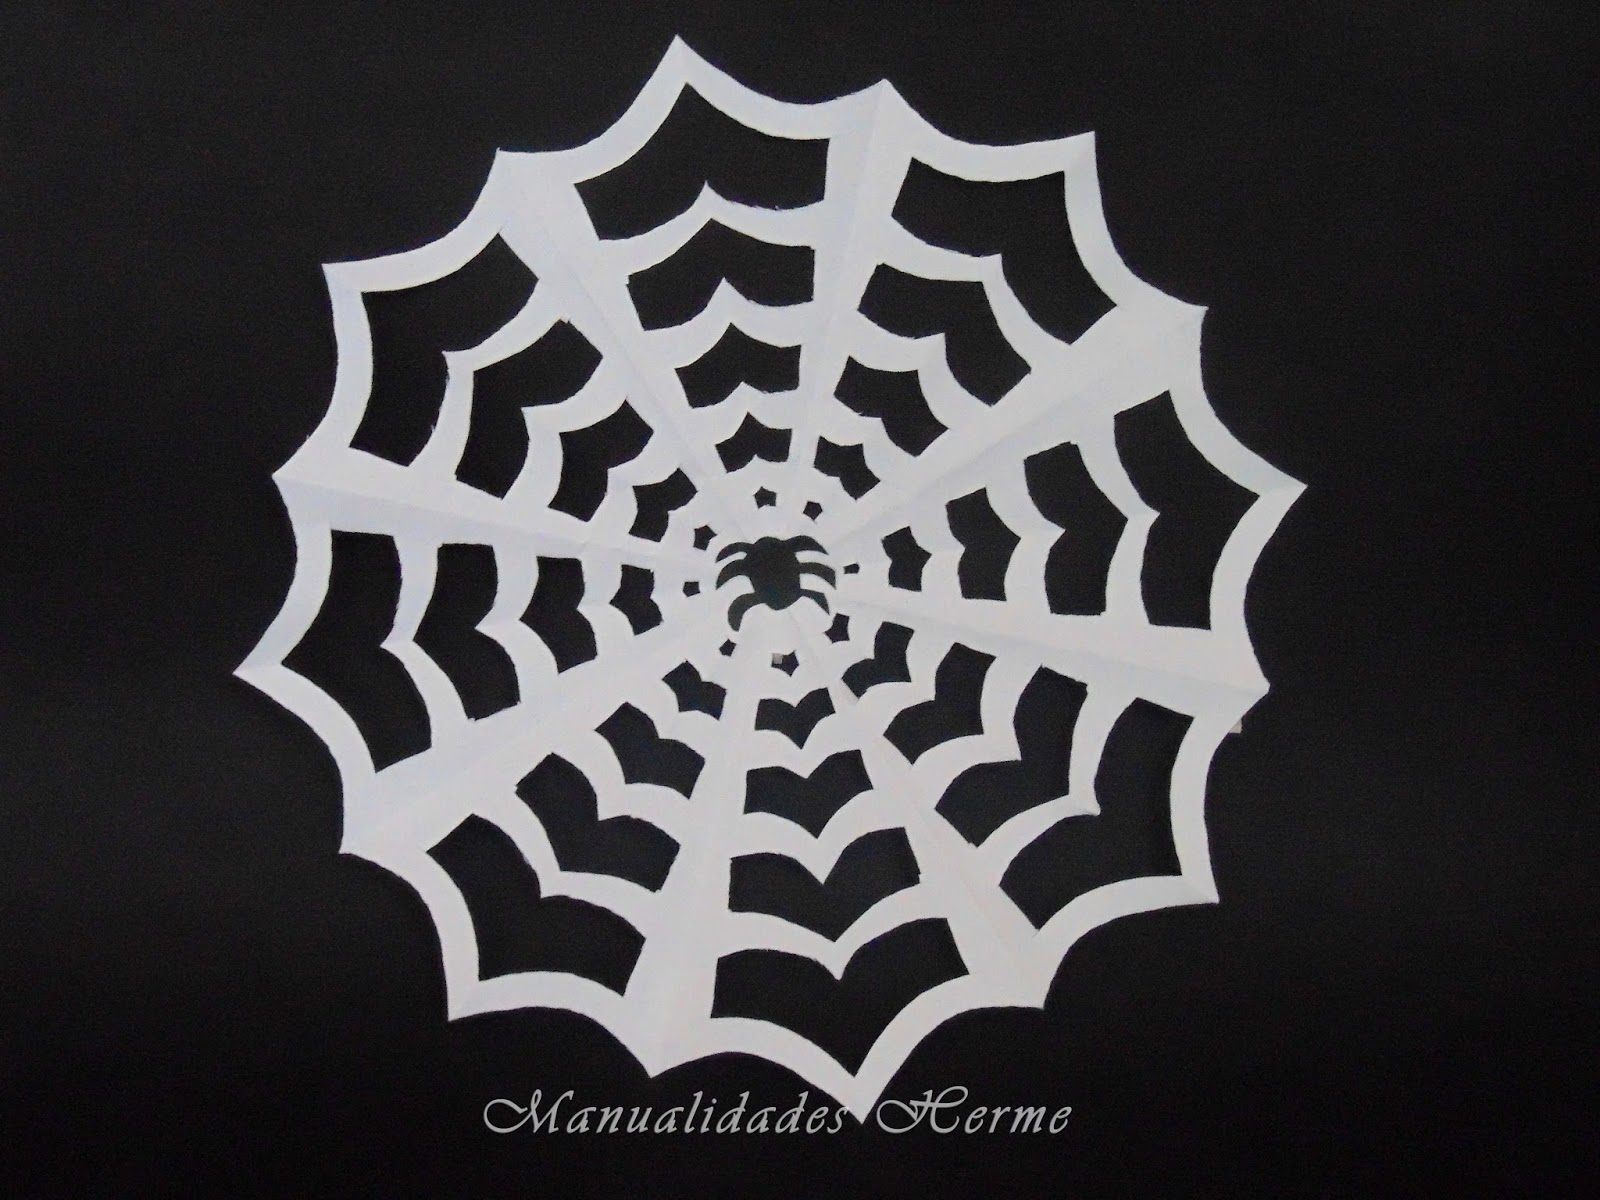 Manualidades herme decoraci n halloween hacer tela de ara a for Decoracion halloween manualidades